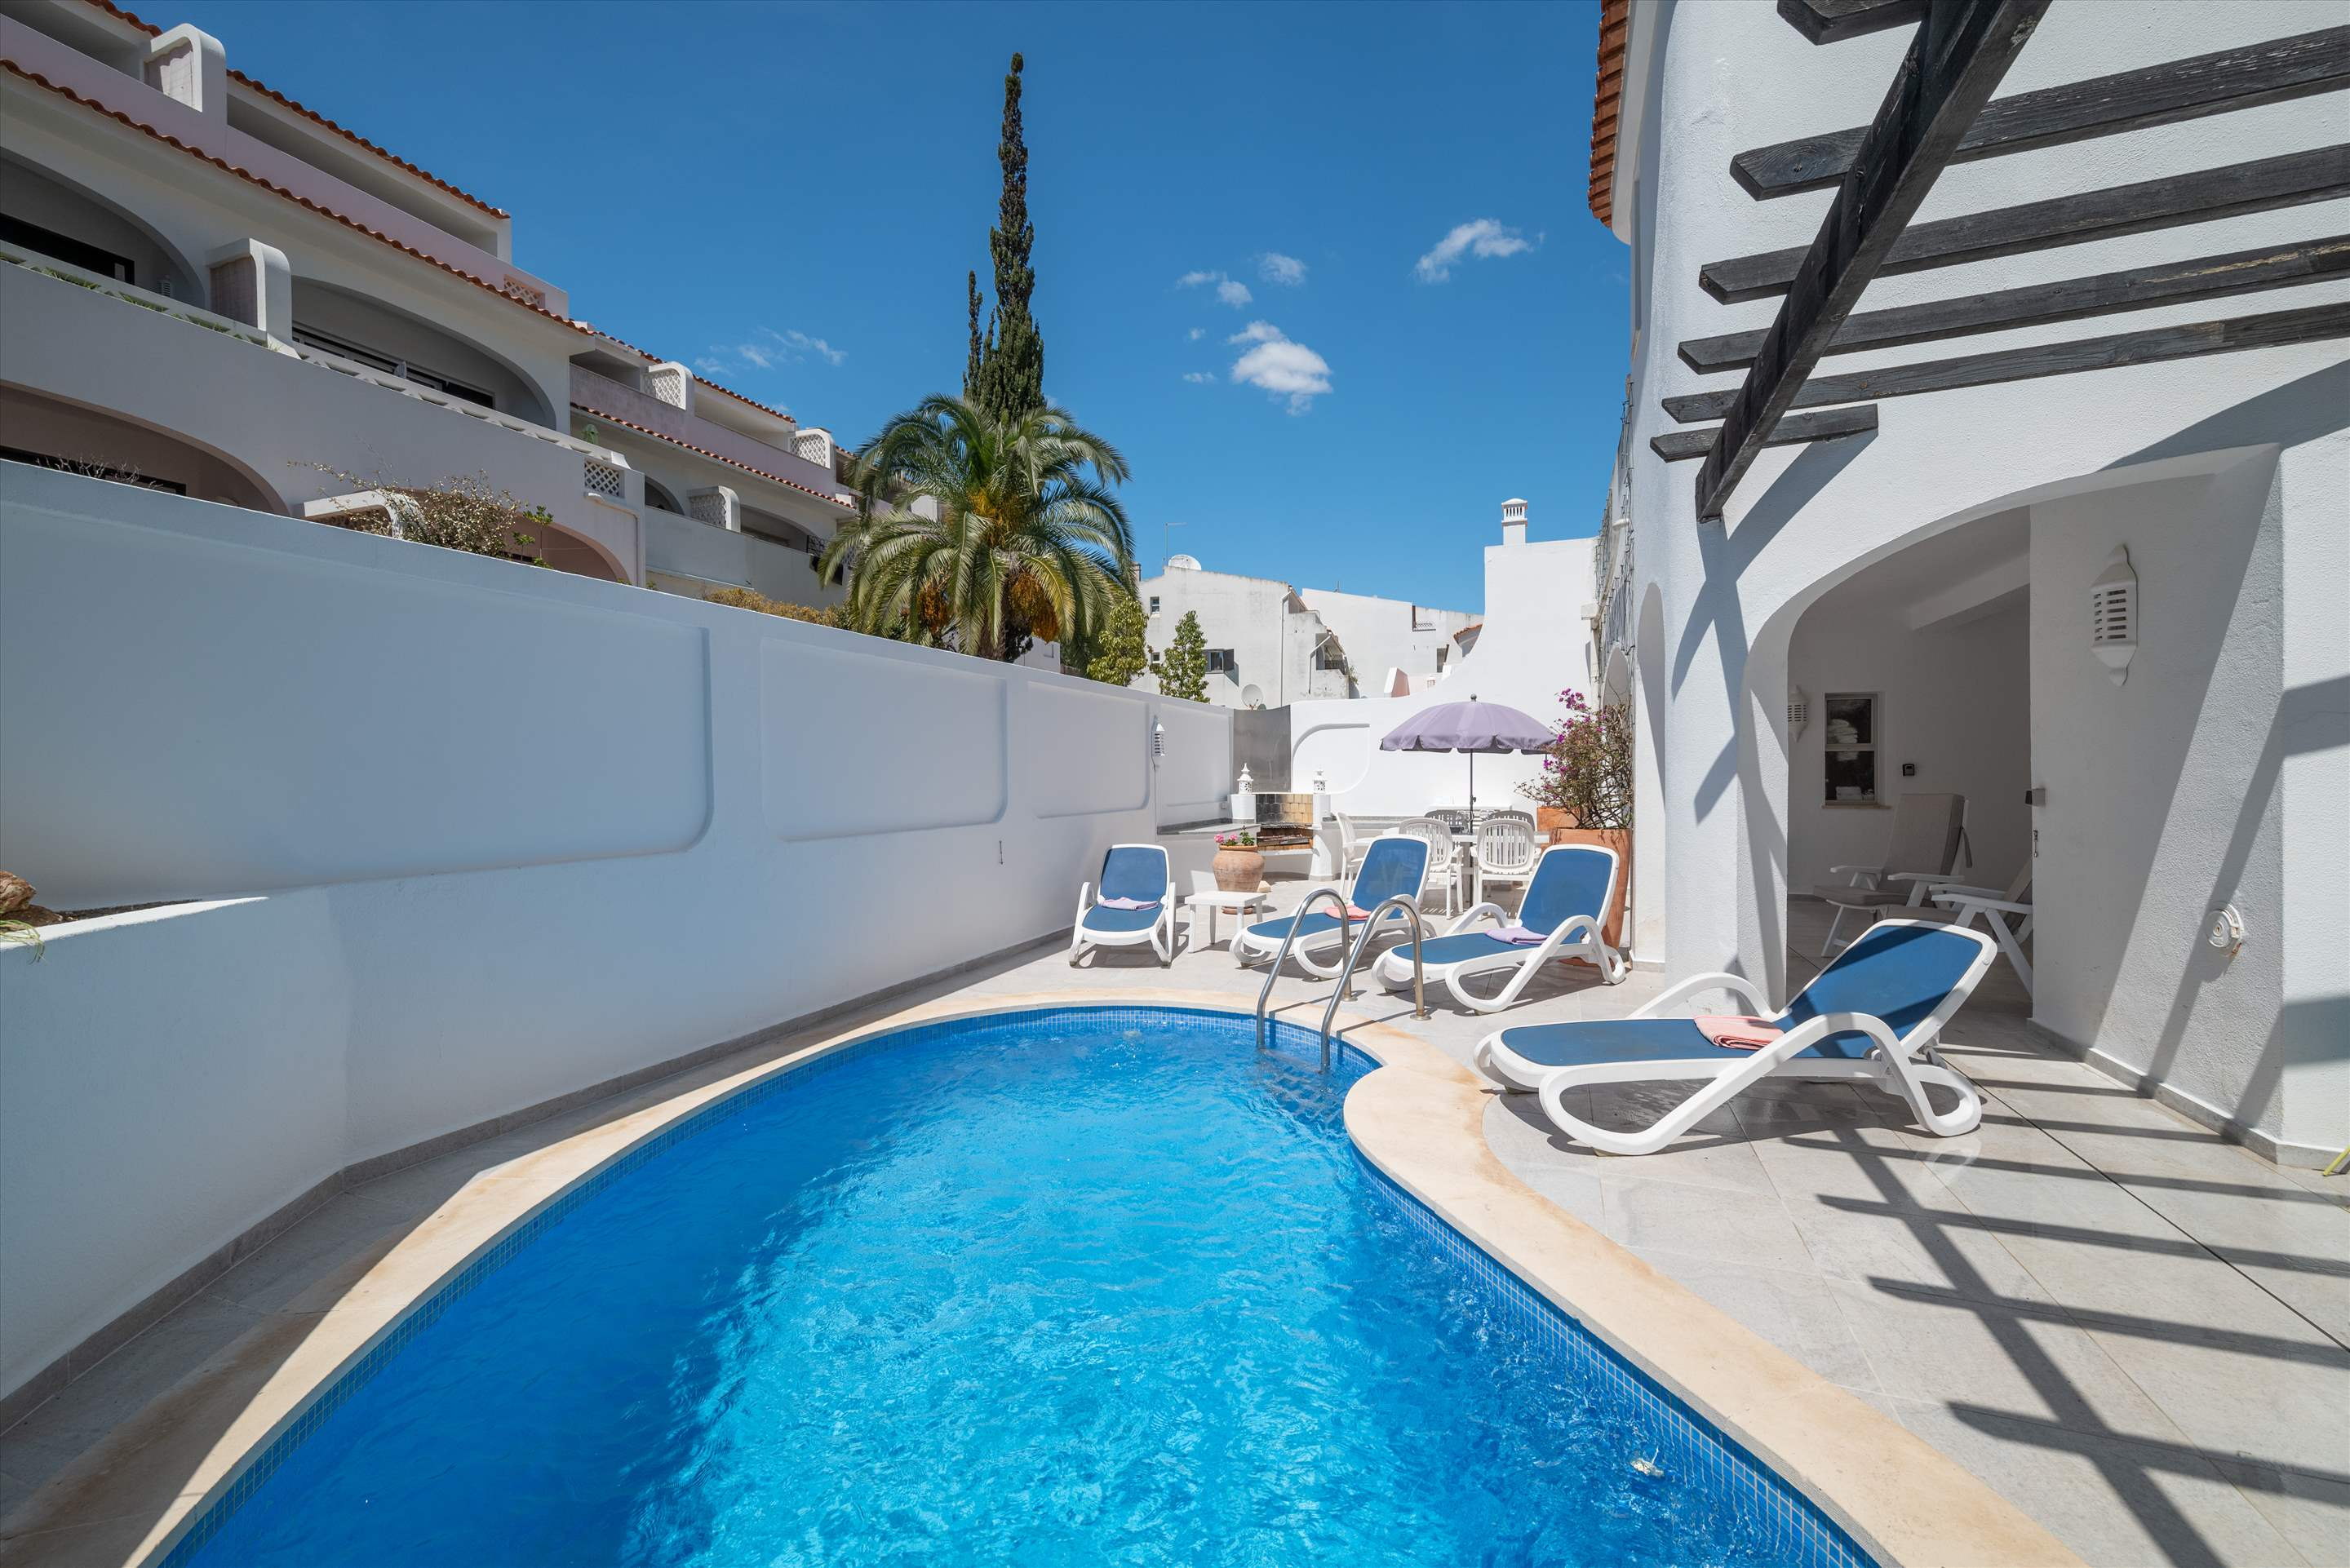 Casa Bella, 3 bedroom apartment in Vale do Lobo, Algarve Photo #1